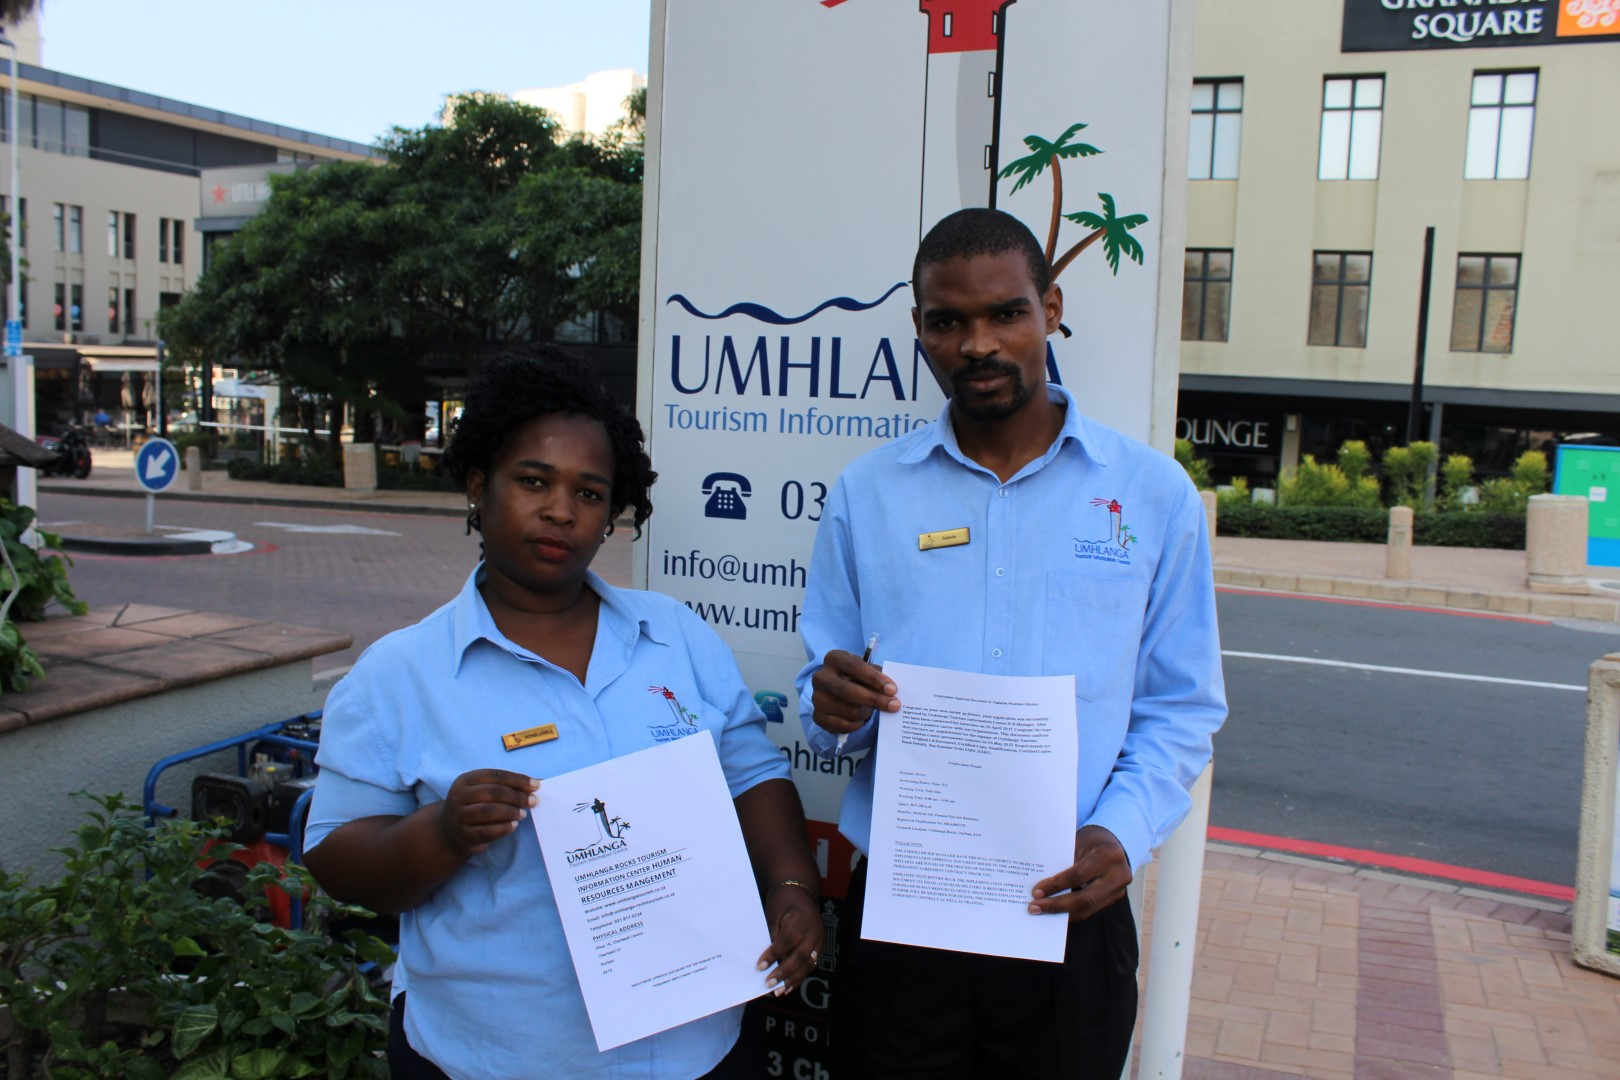 Nonhlanhla Shazi and Sabelo Didi of Umhlanga Tourism show the fake contracts the scam artists are using.